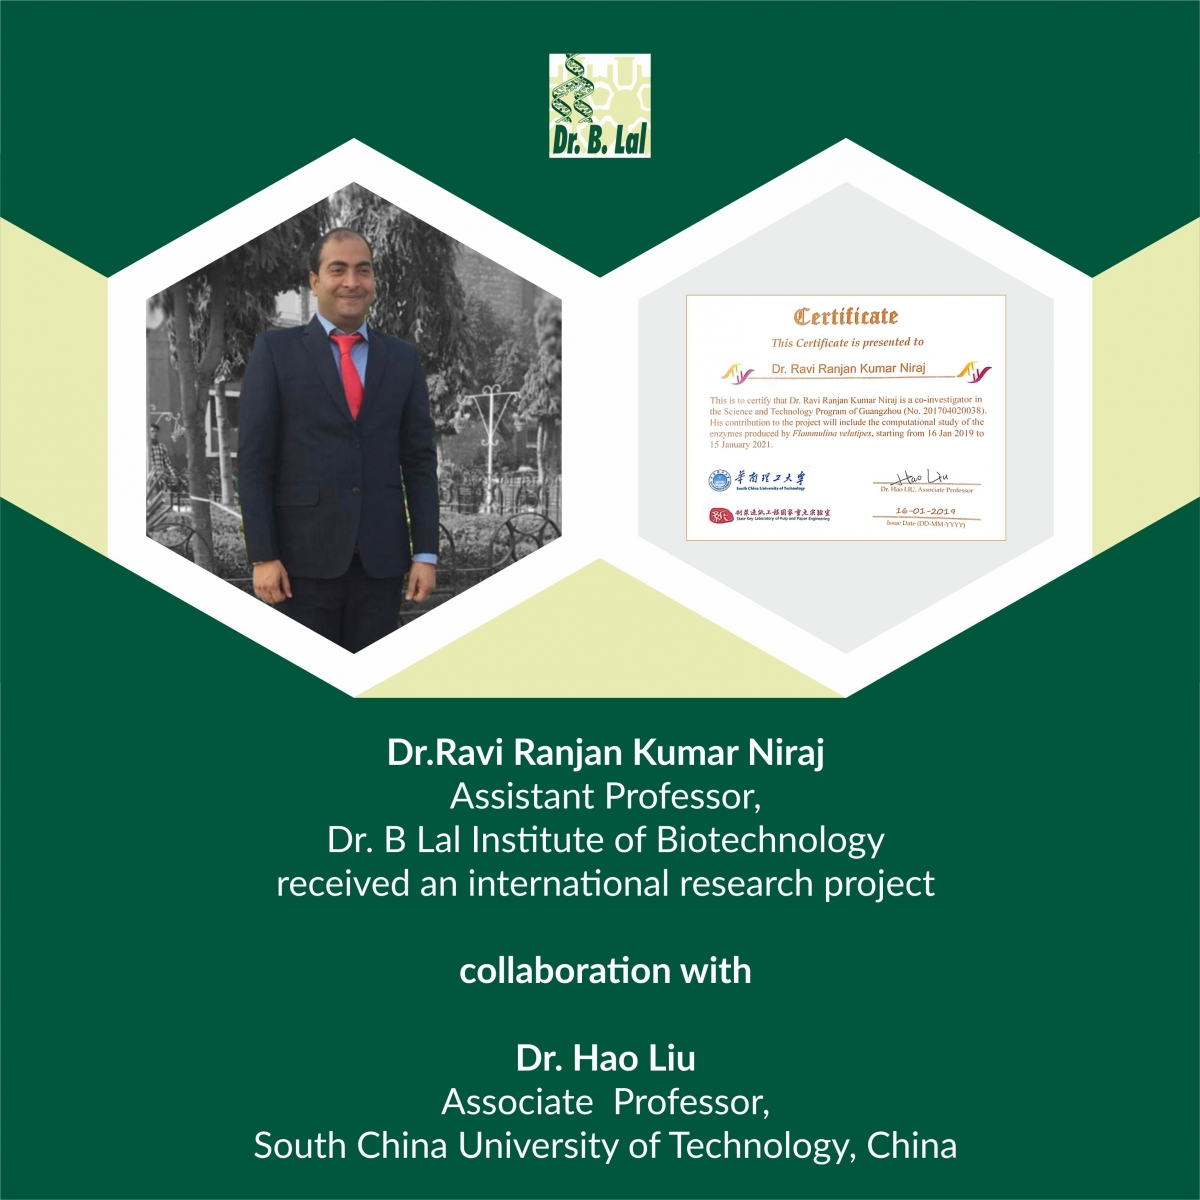 International Research Project Collaboration